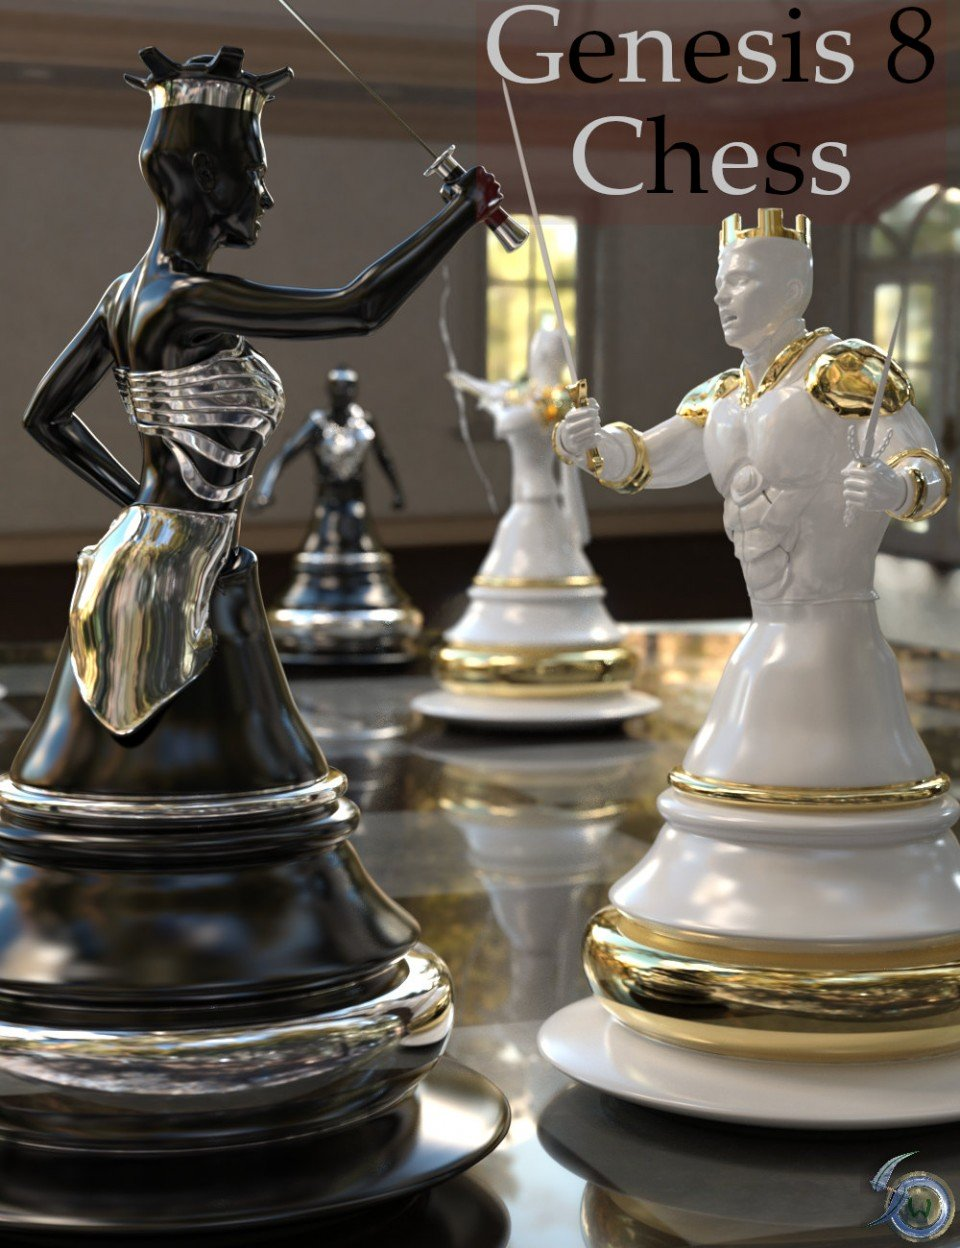 Chess for Genesis 8_DAZ3D下载站